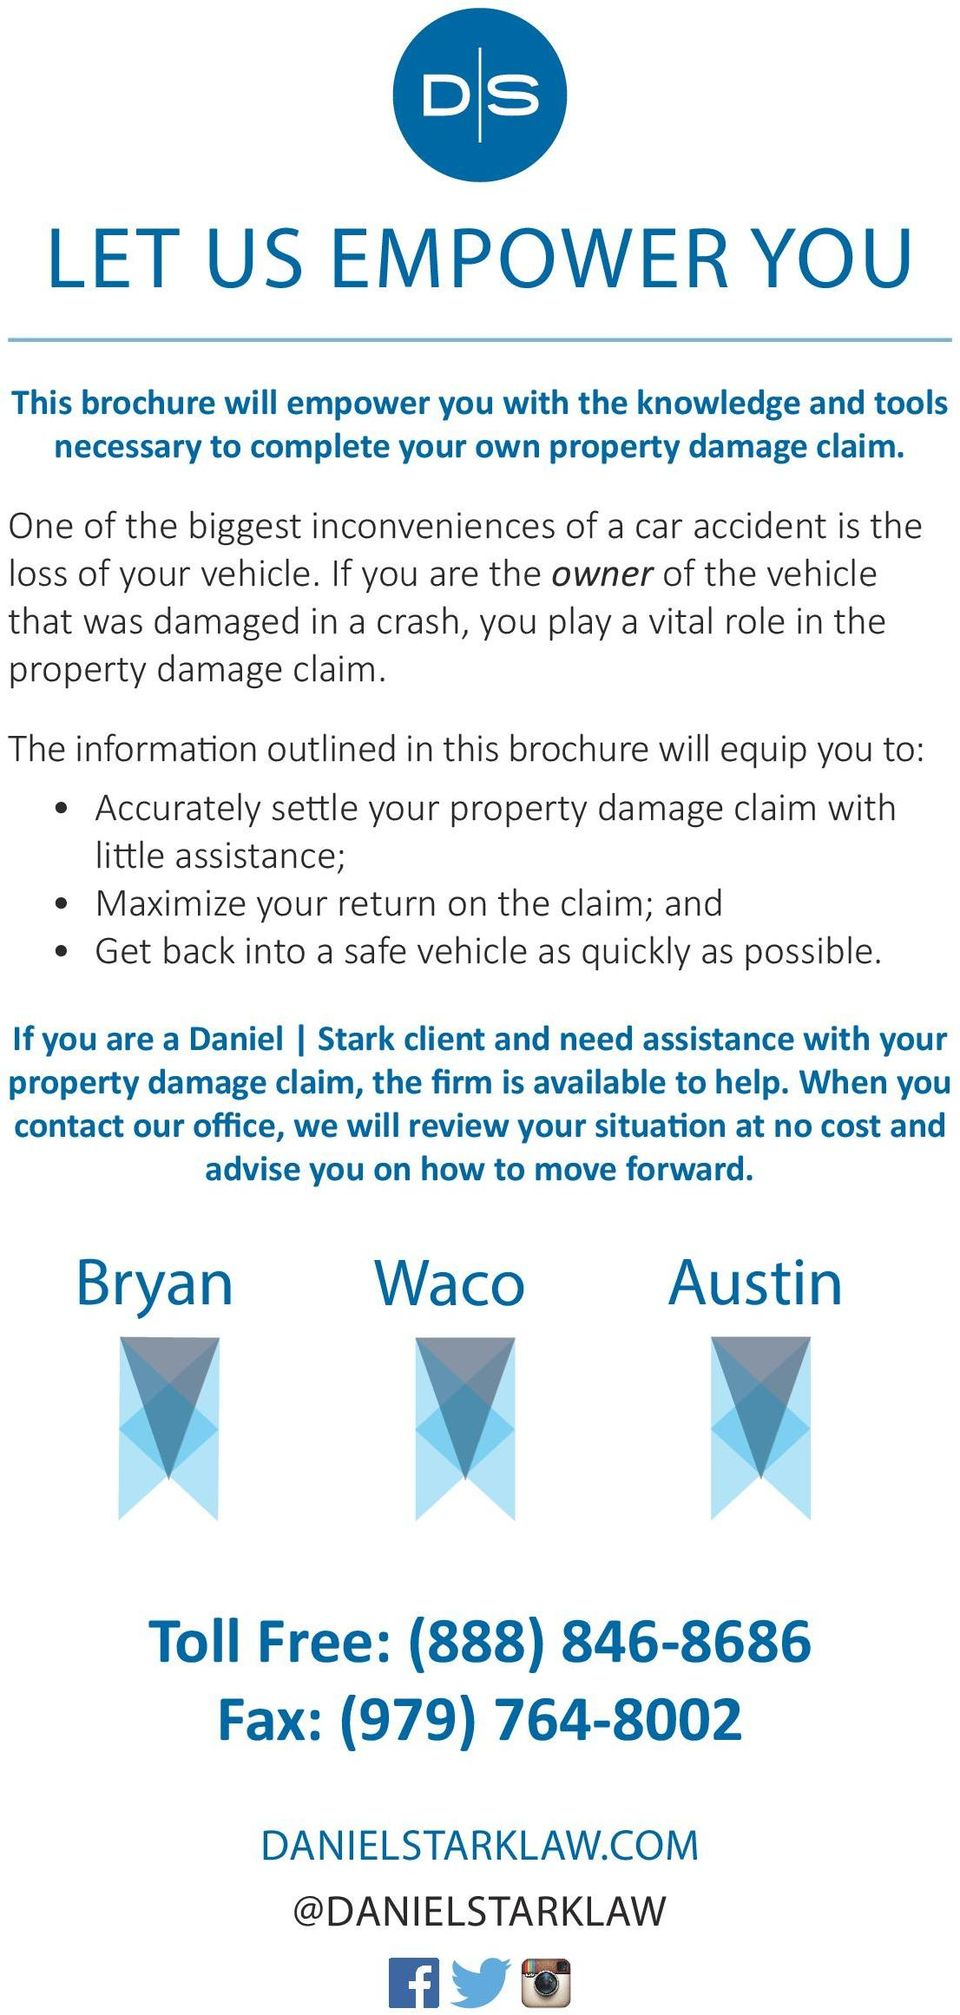 The information outlined in this brochure will equip you to: Accurately settle your property damage claim with little assistance; Maximize your return on the claim; and Get back into a safe vehicle